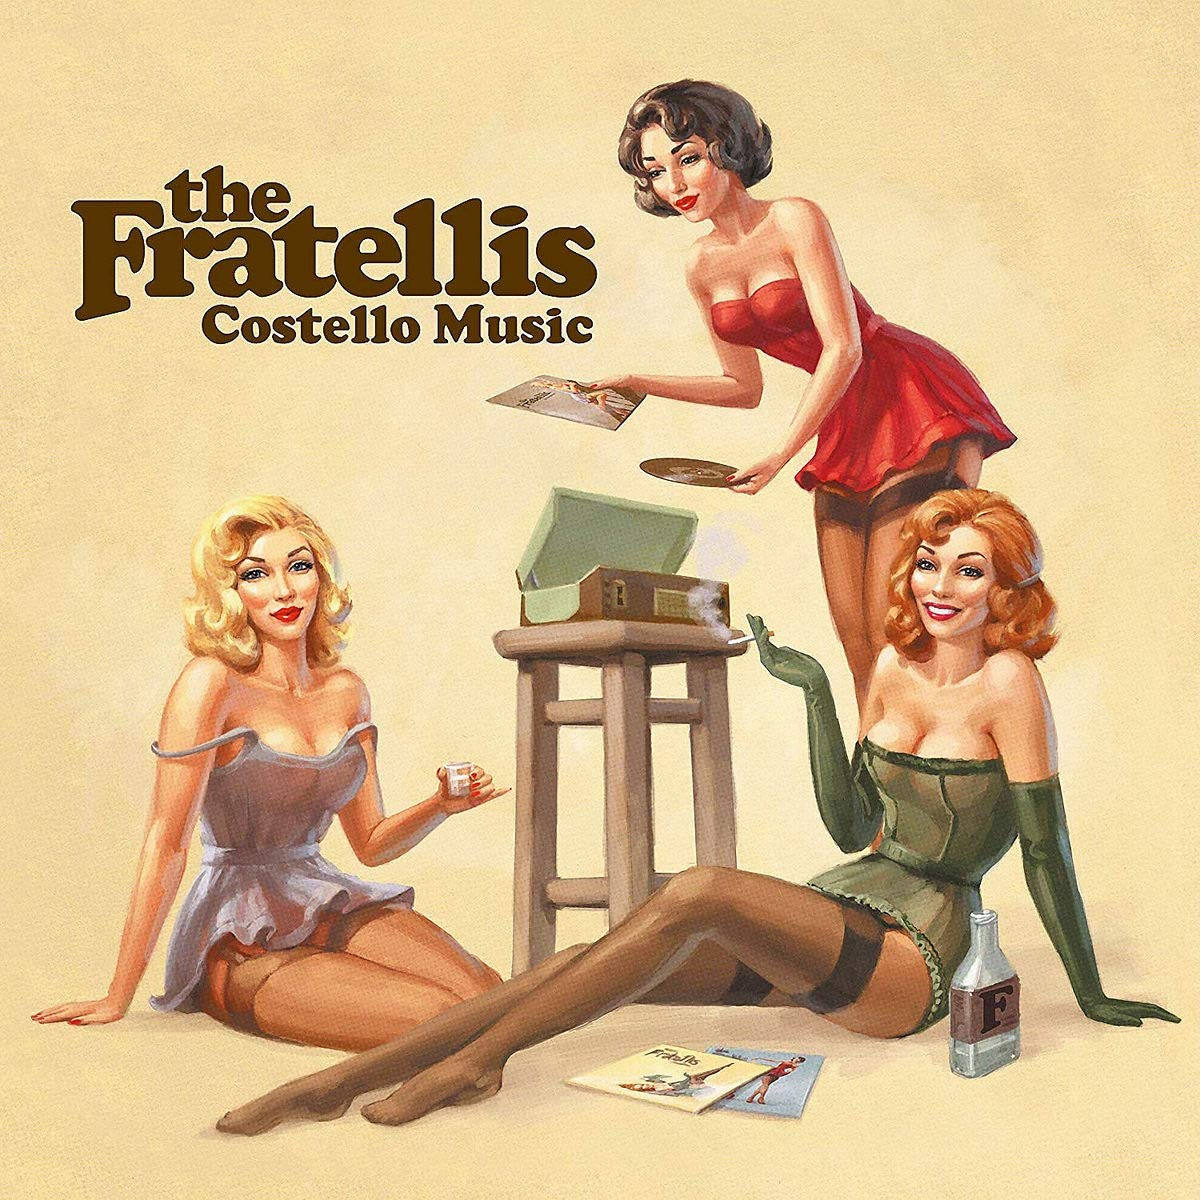 The Fratellis - Costello Music (2007) [FLAC] Download